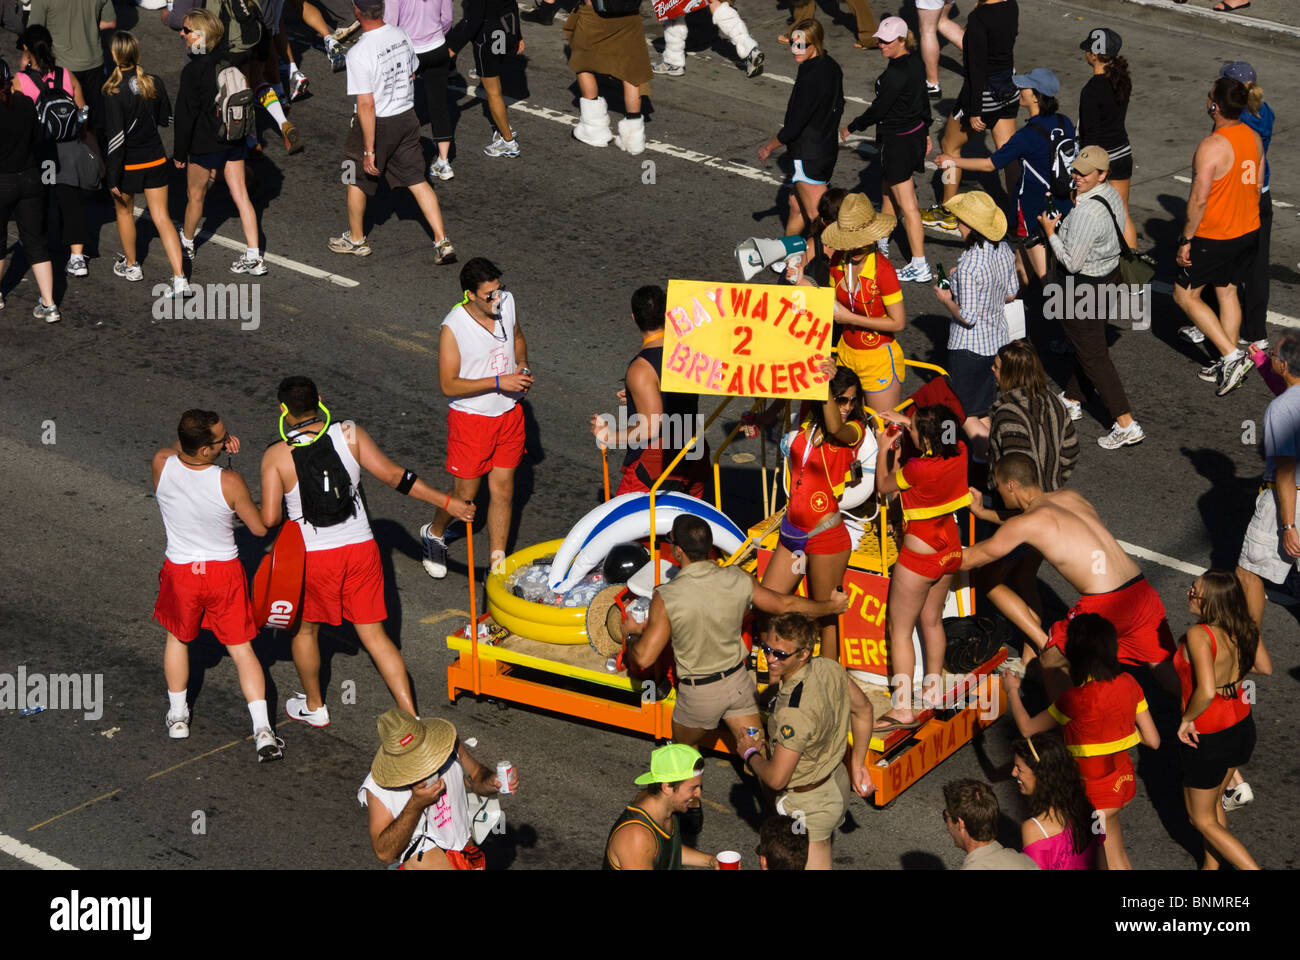 California: San Francisco Bay to Breakers annual foot race. Photo copyright Lee Foster. Photo # 31-casanf80847 - Stock Image